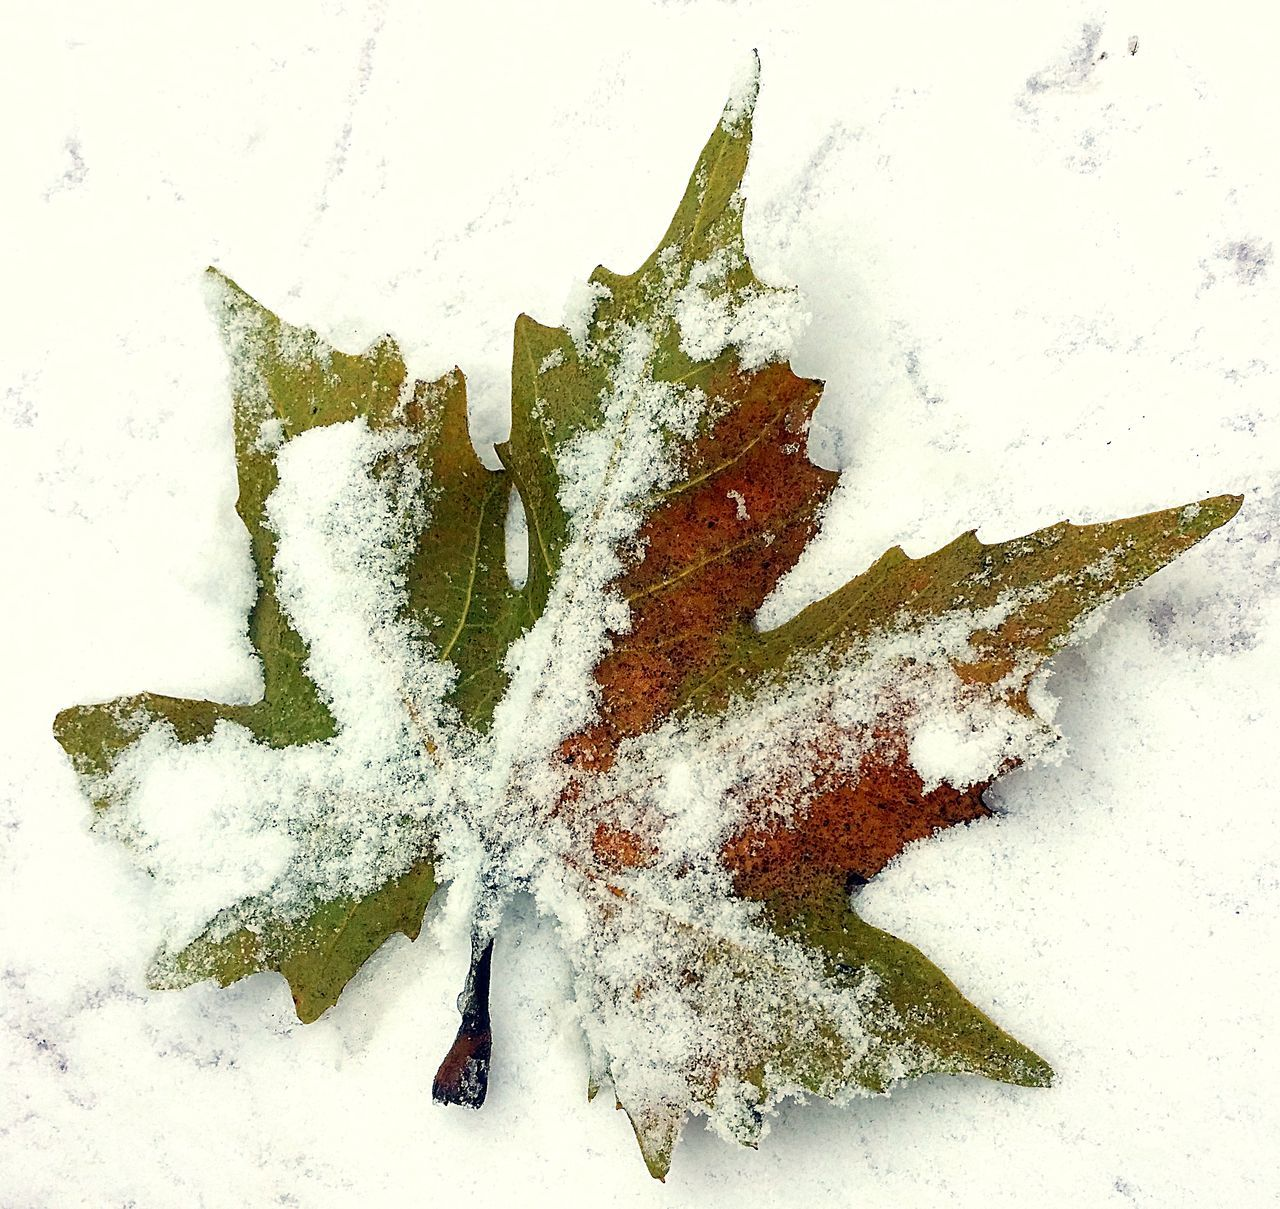 Close-up Cold Winter ❄⛄ Leaf Leaf In The Snow Leafs Photography Nature Snow Winter